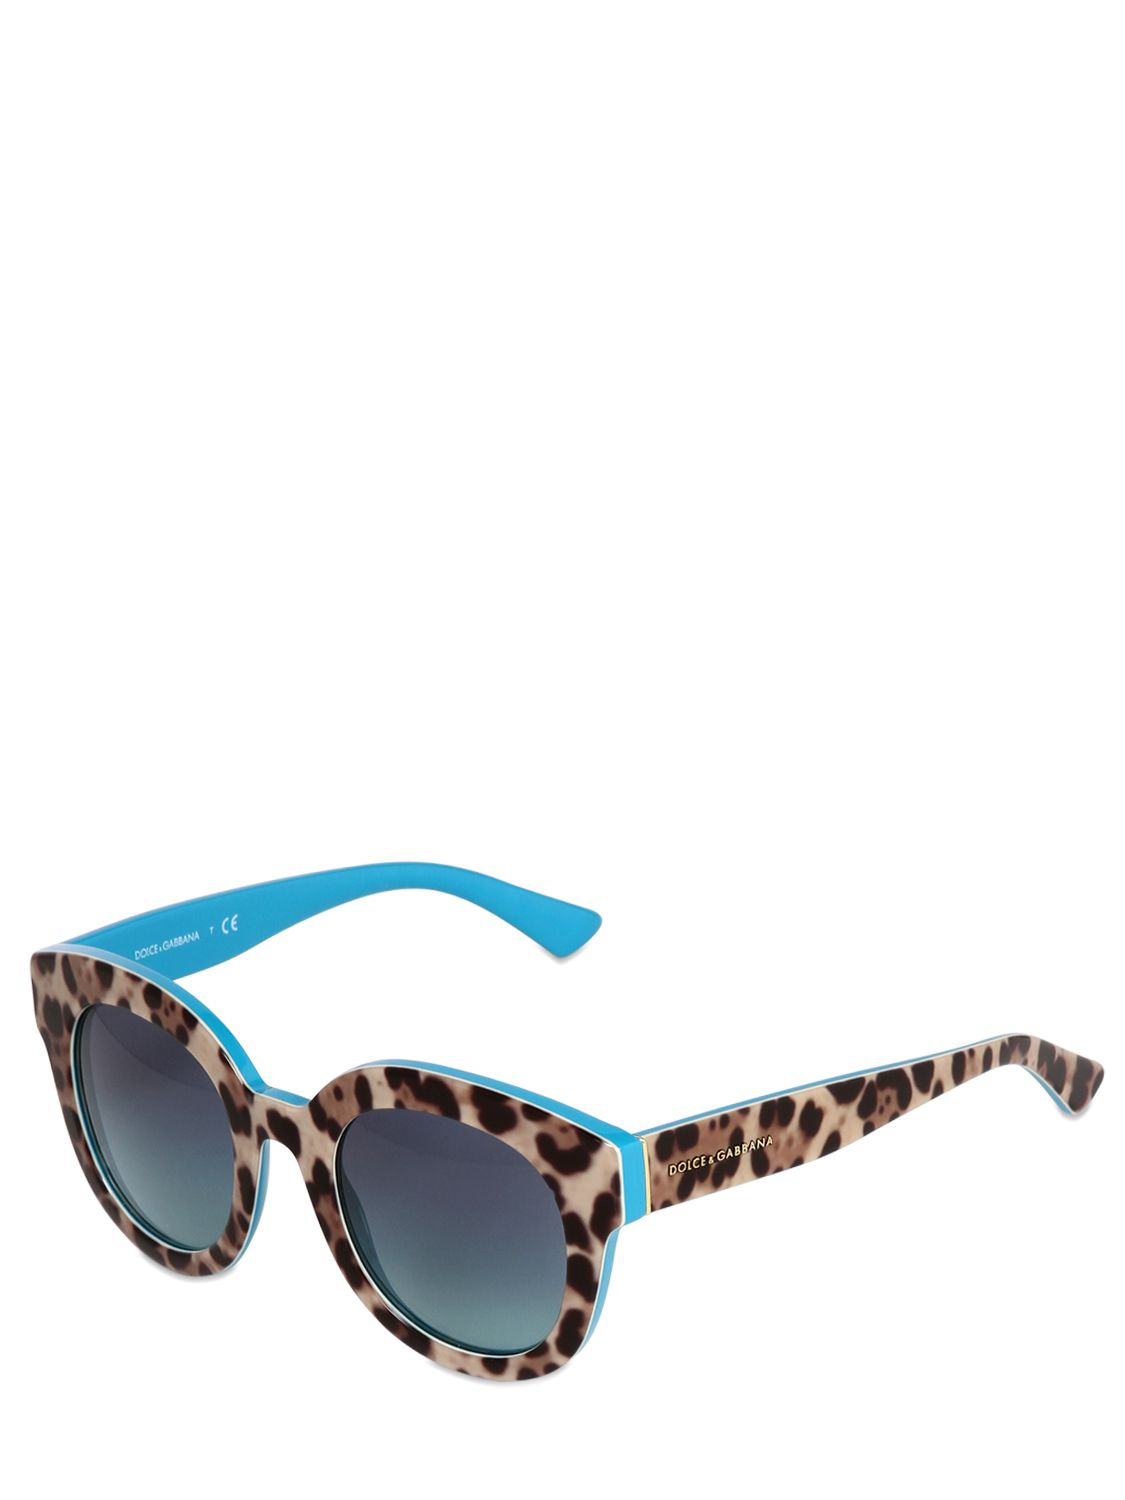 6d330bffa44 Blue Lyst In Sunglasses Dolce Rounded amp  Printed Leopard Gabbana 1vTq7g